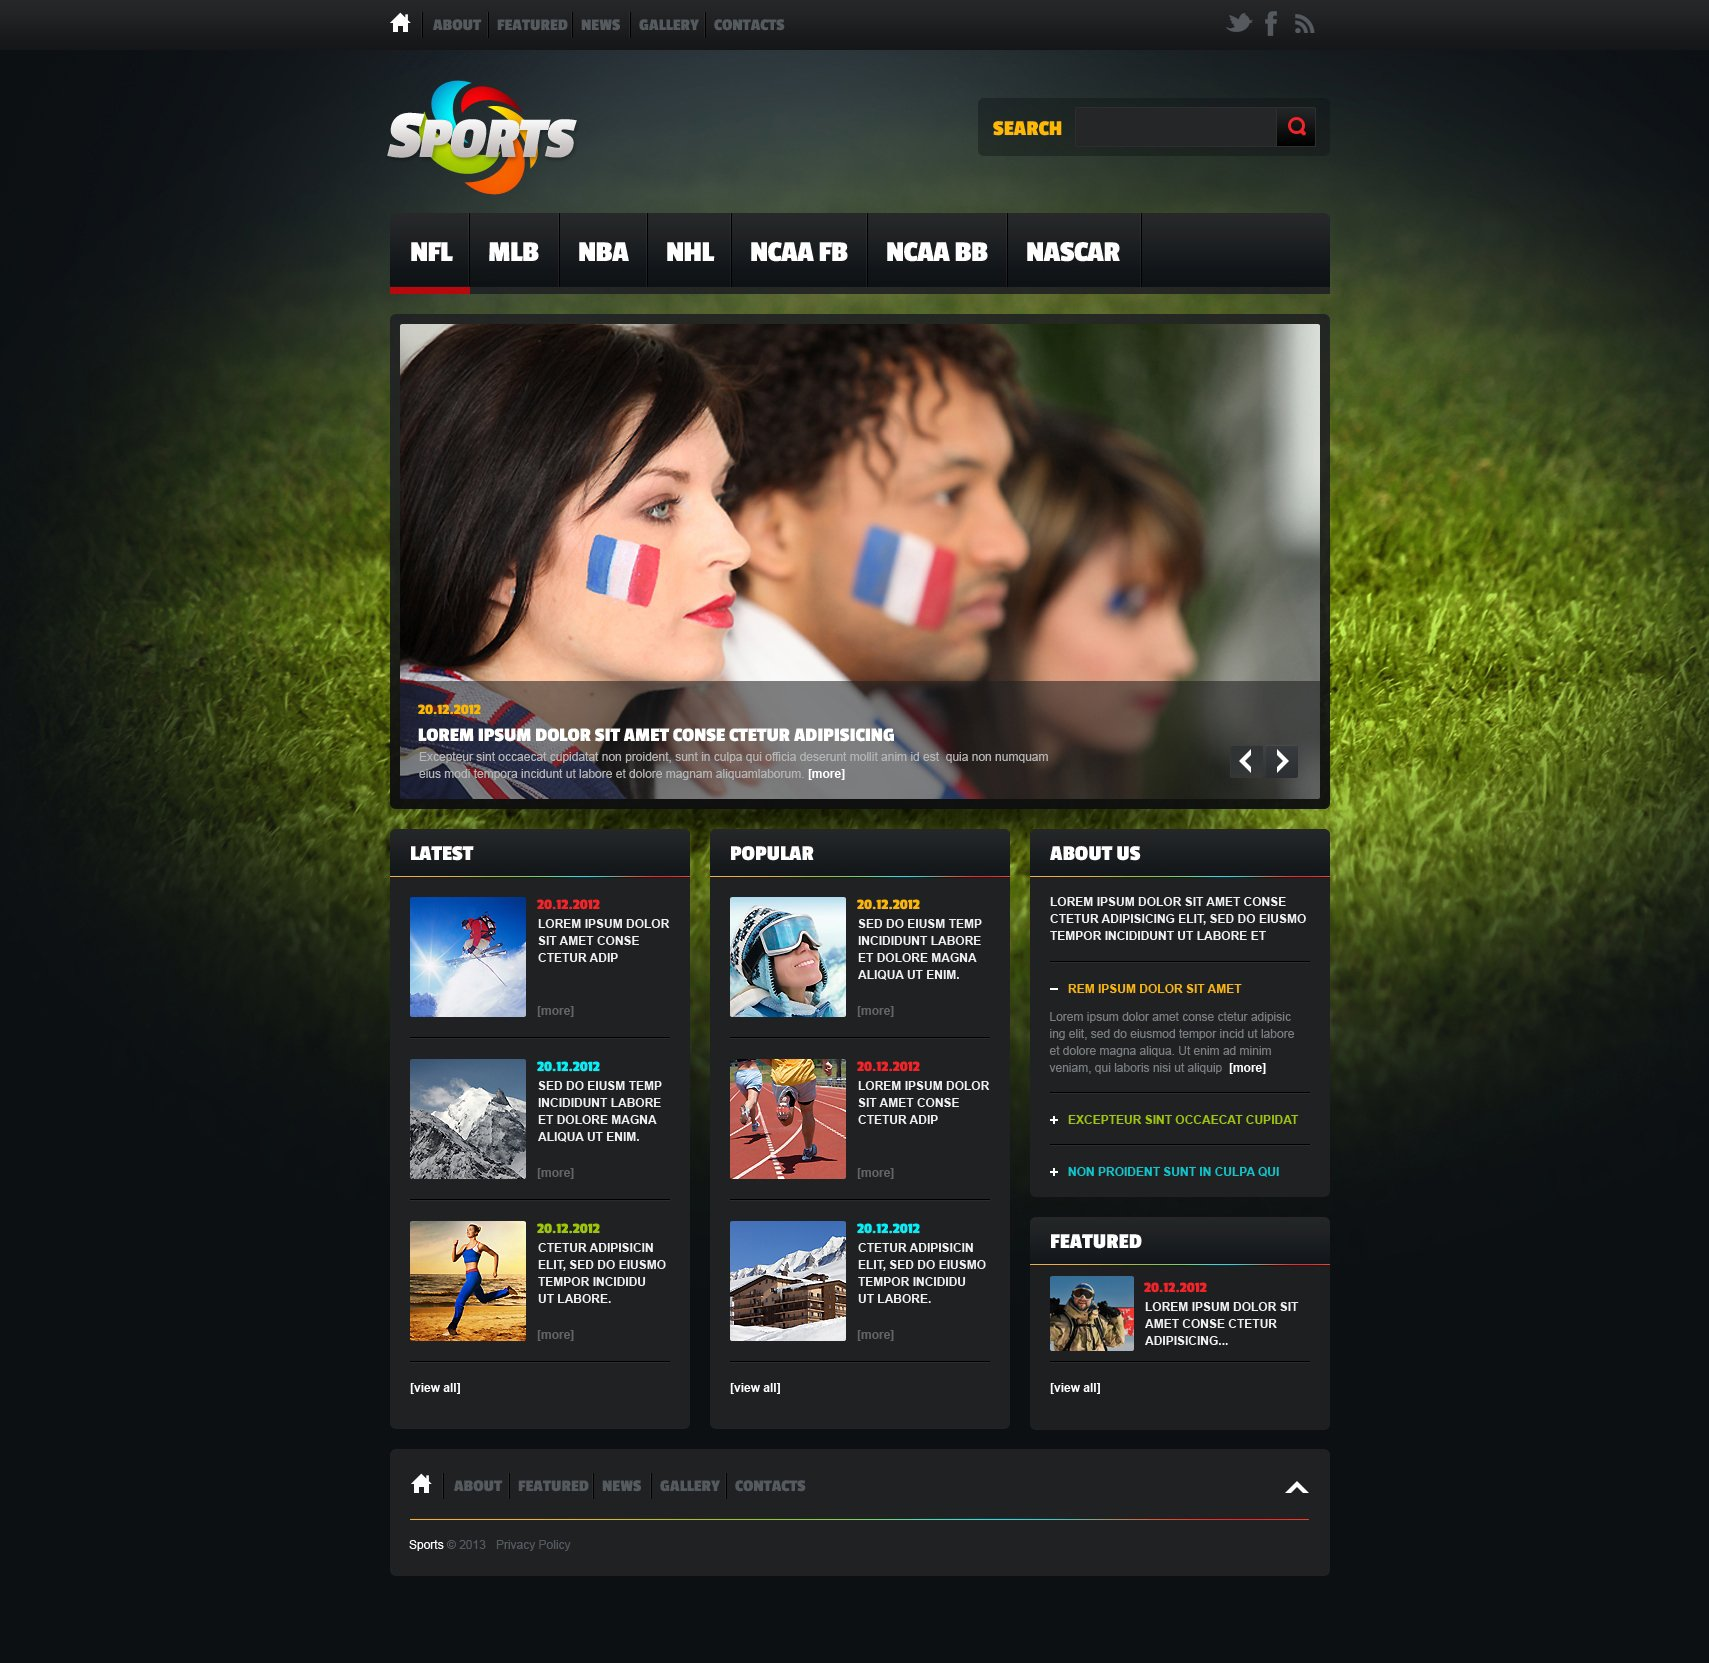 sports-news-website-template_46919-original.jpg